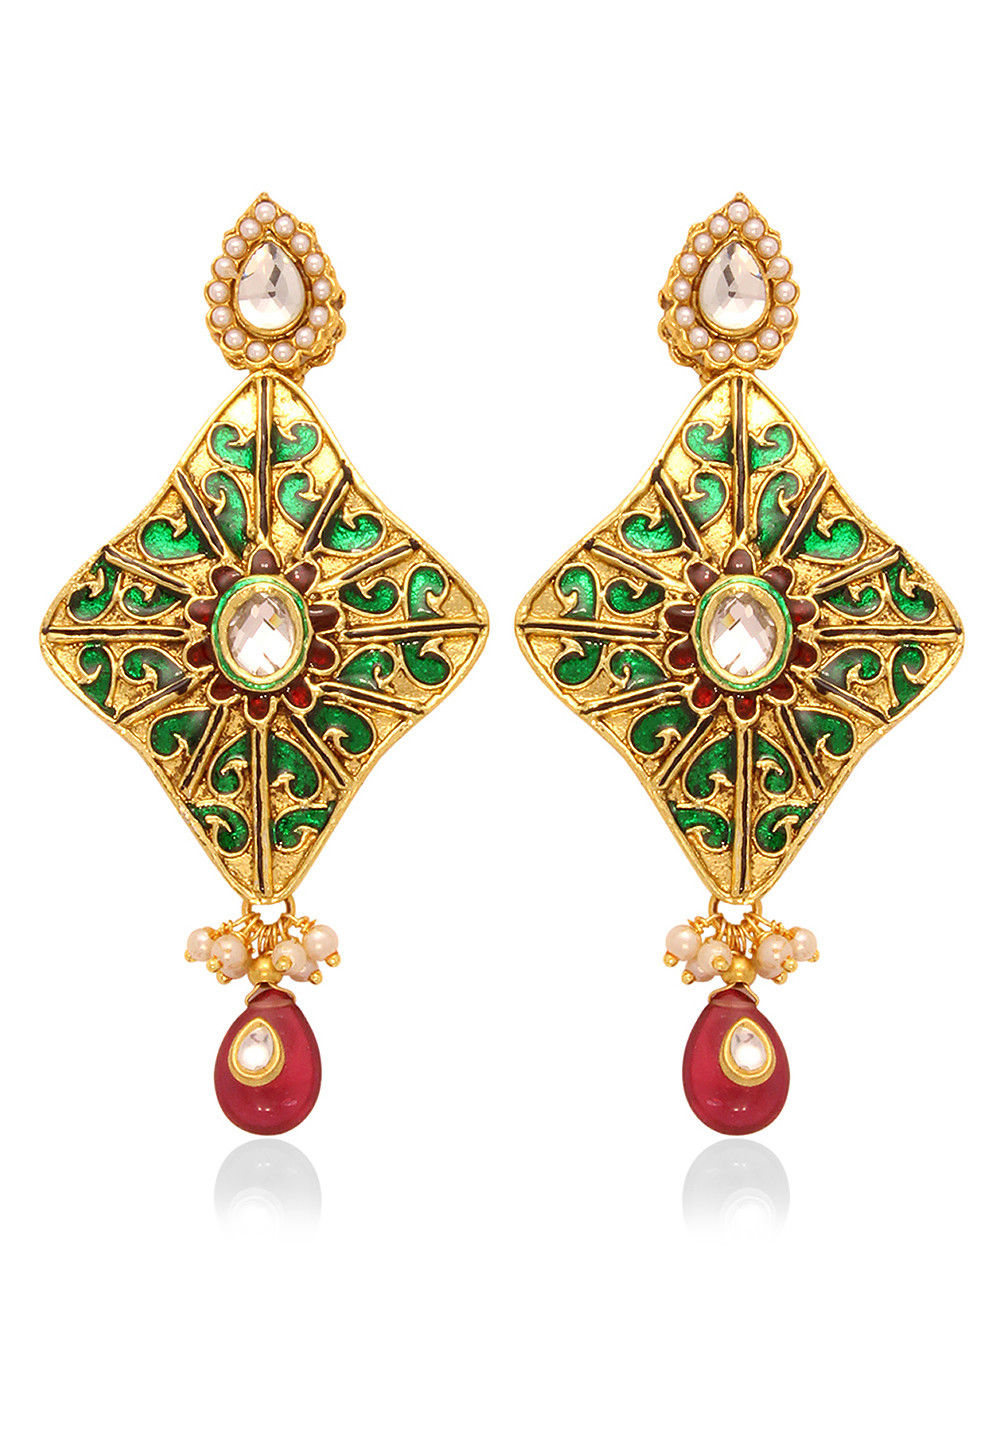 Meenakari Earring in Green and Maroon